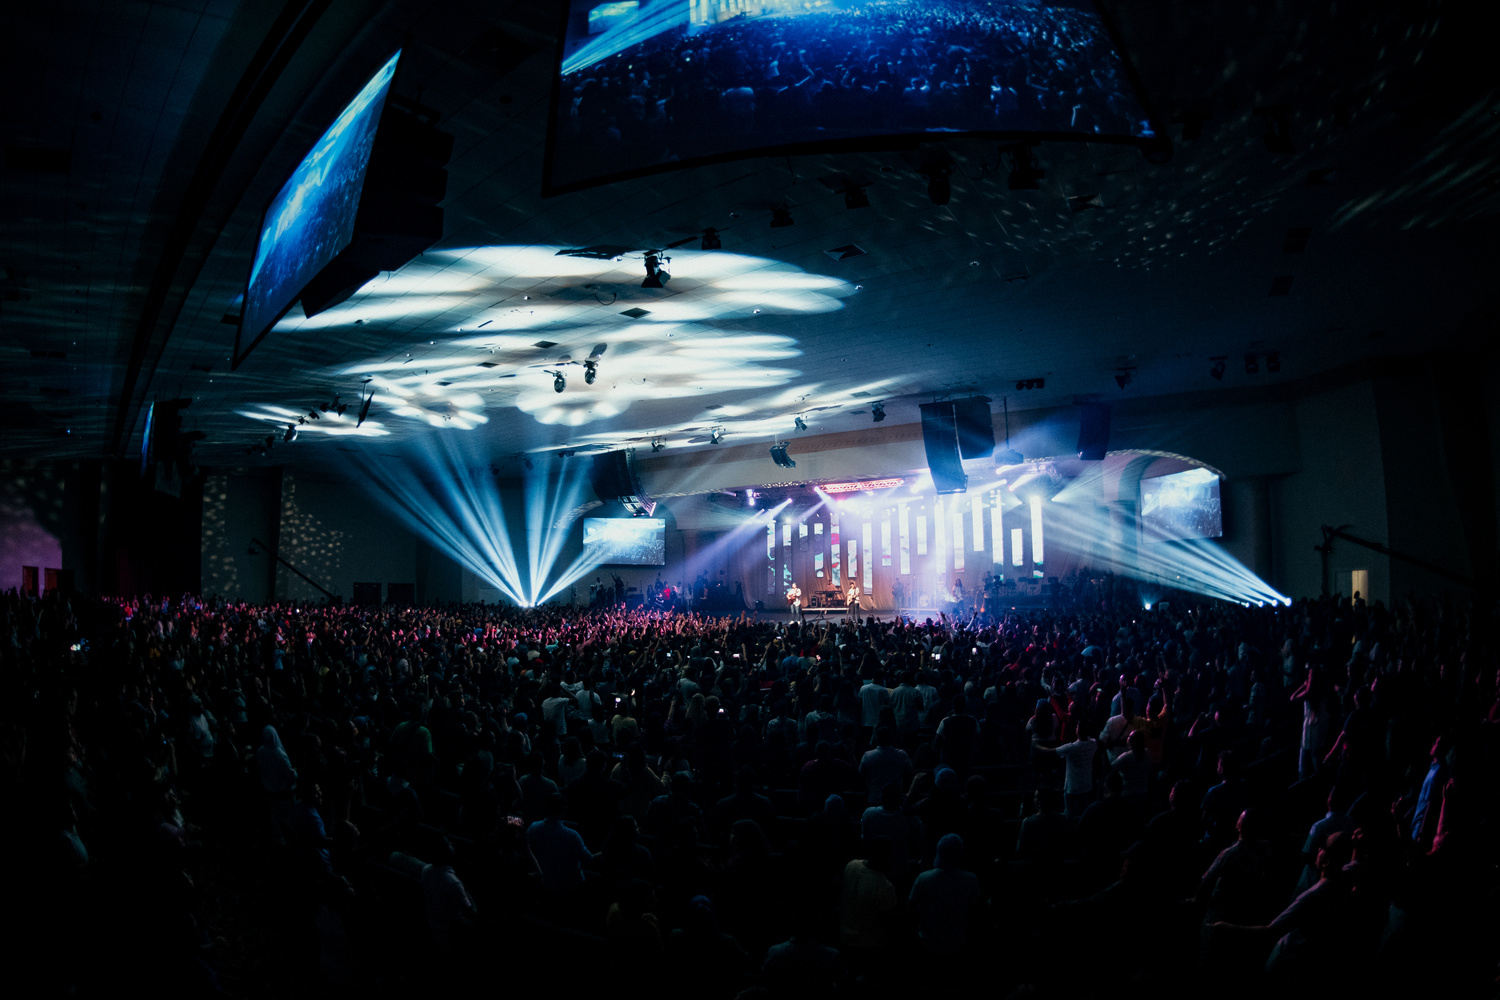 Wide monopod shot during Bethel Concert in Miami by Andrew Camel